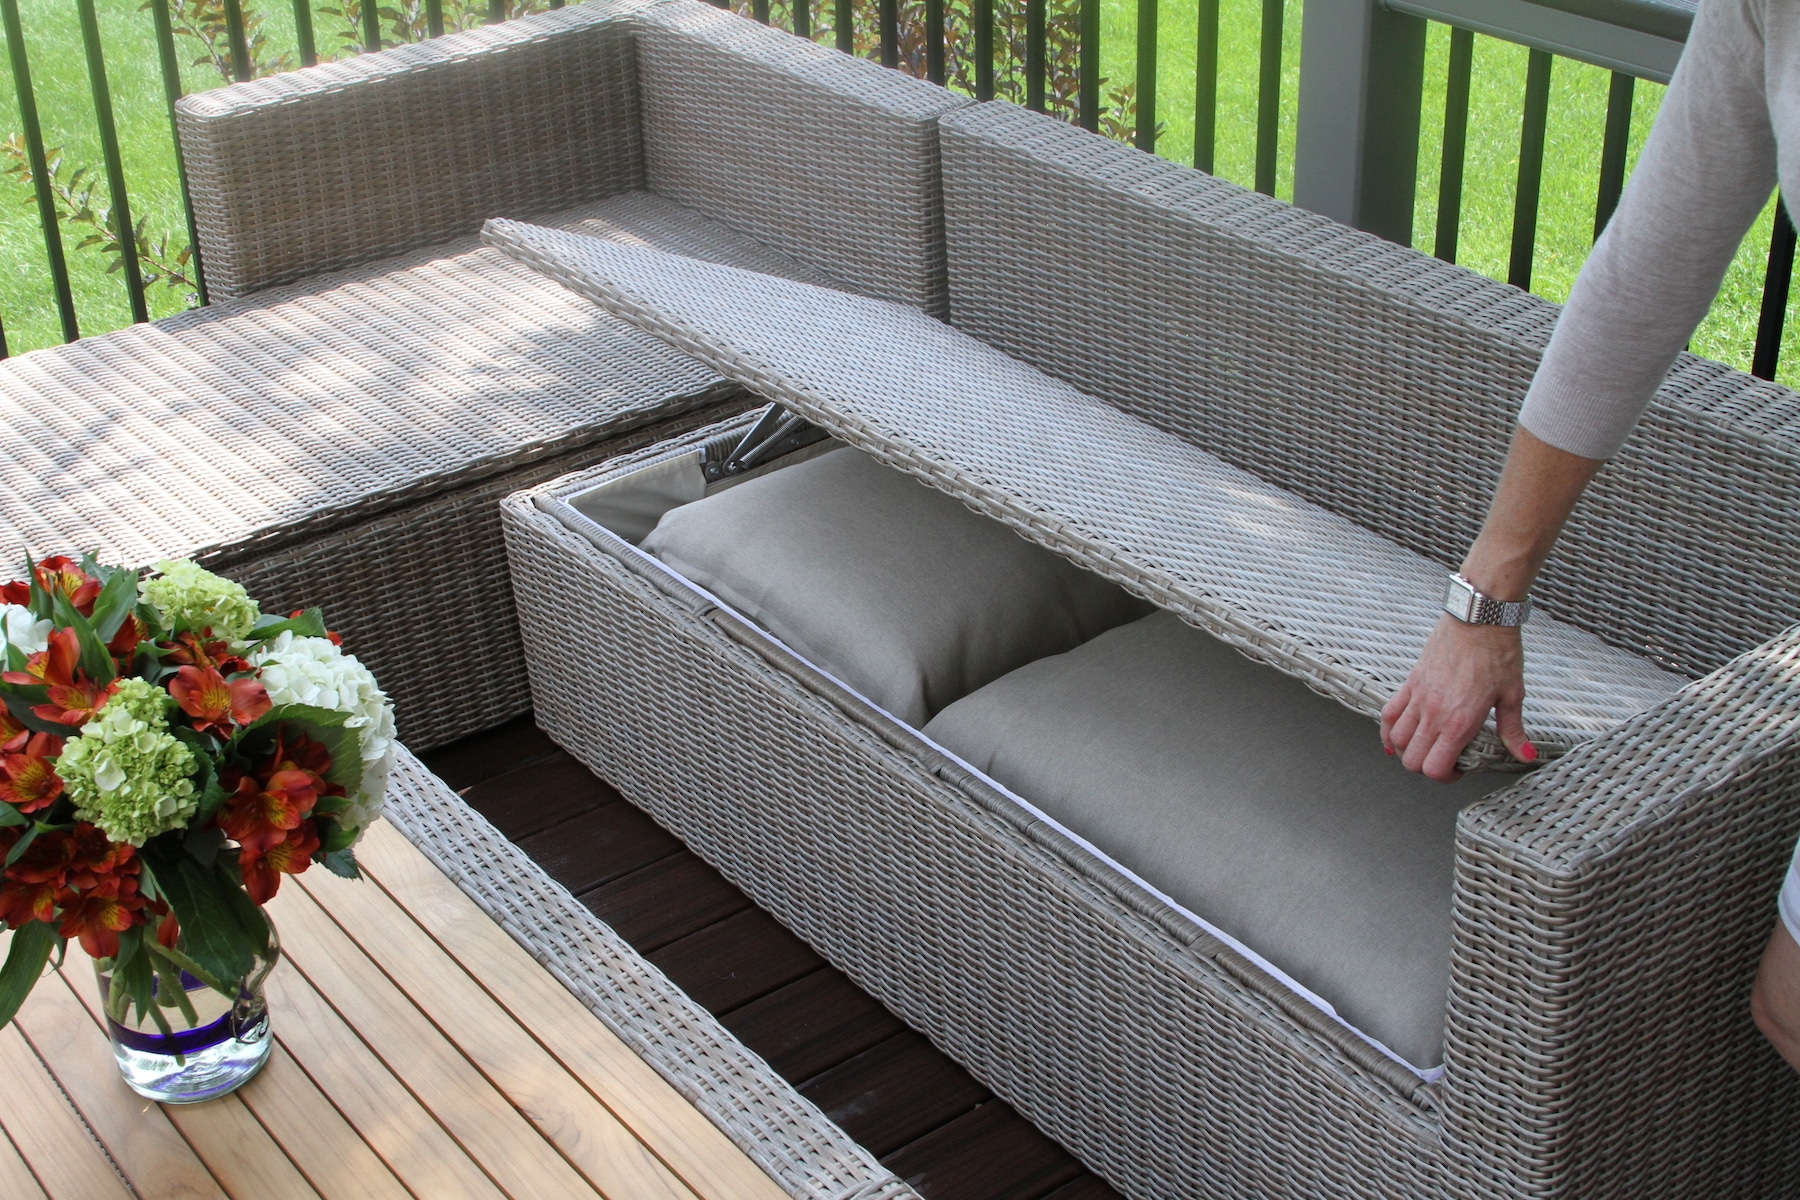 Wicker Outdoor Furniture With Storage